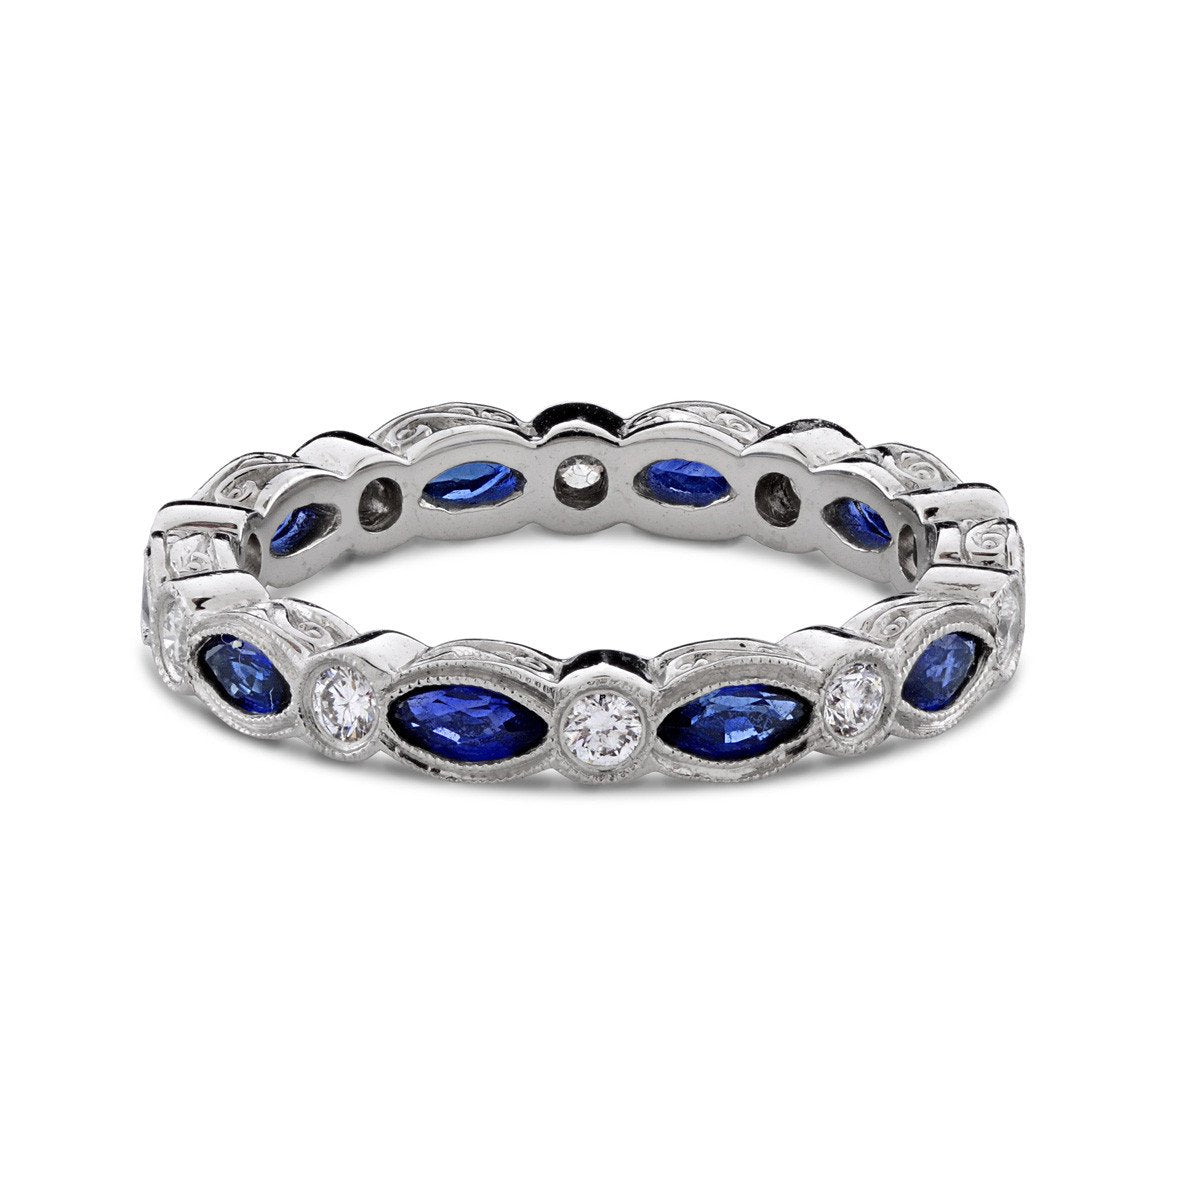 art bands wg band gemstone with diamond in pave blue gold anniversary white set deco wedding nl sapphire jewelry round